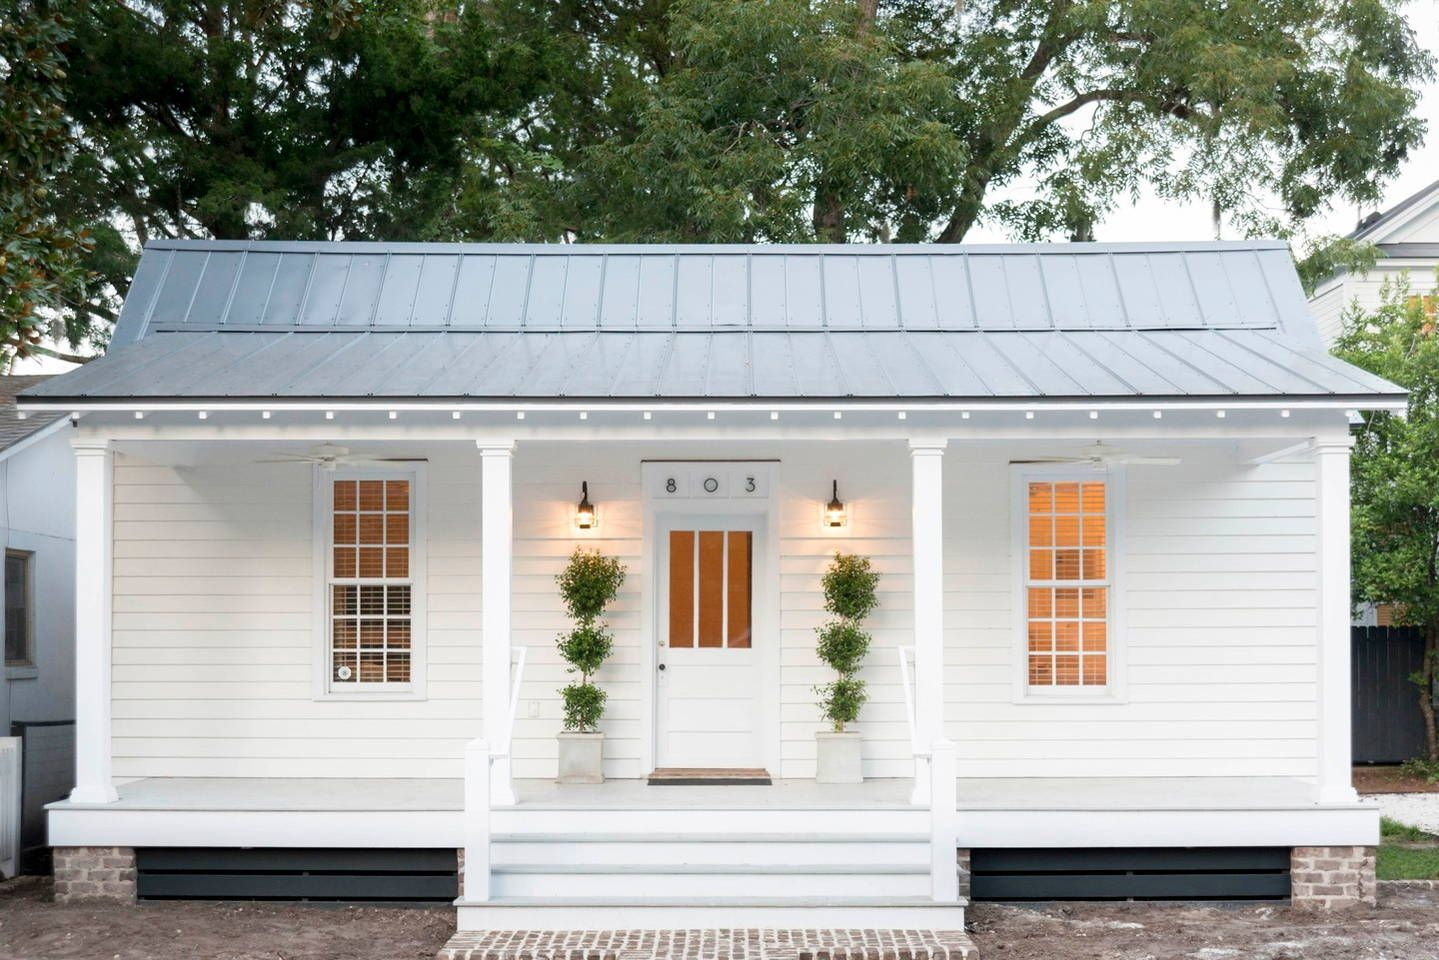 How to turn a boring ranch style house into an adorable cottage add